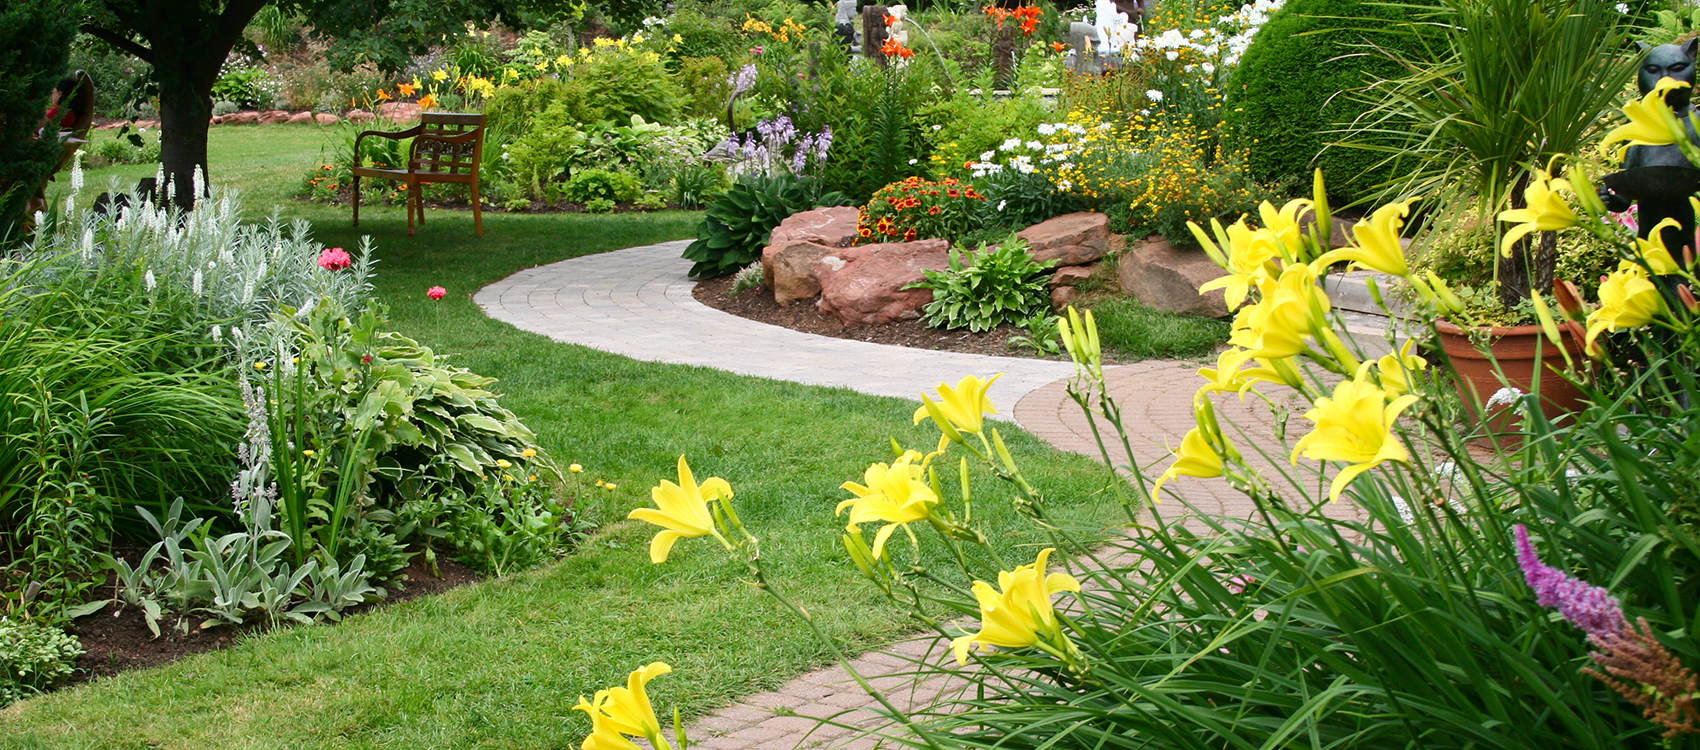 Request an estimate zionsville landscaping services for Landscape gardening services